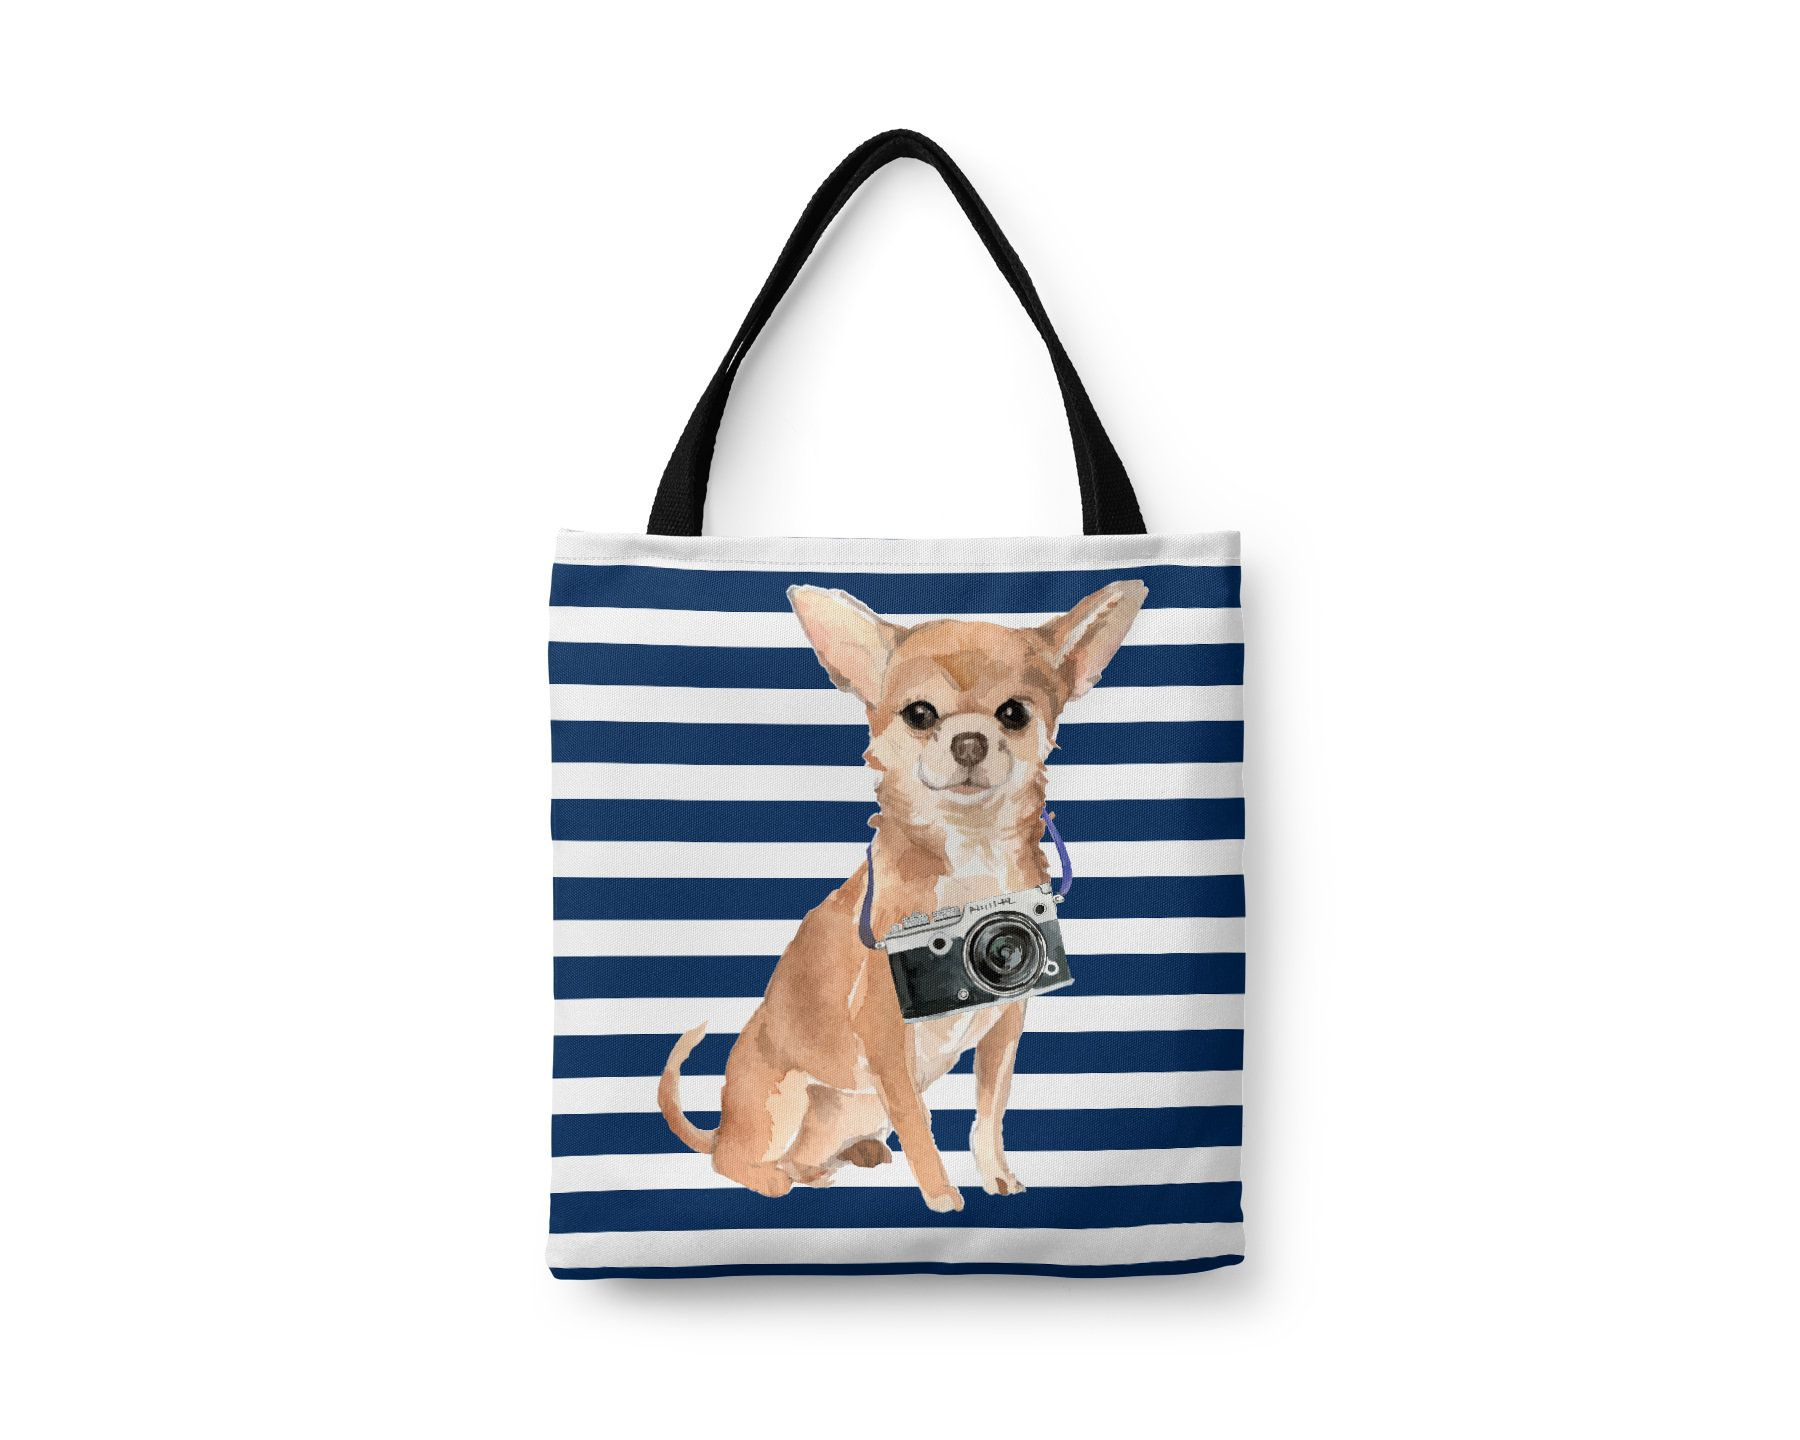 Chihuahua Dog Tote Bag Illustrated Dogs 6 Travel Inspired